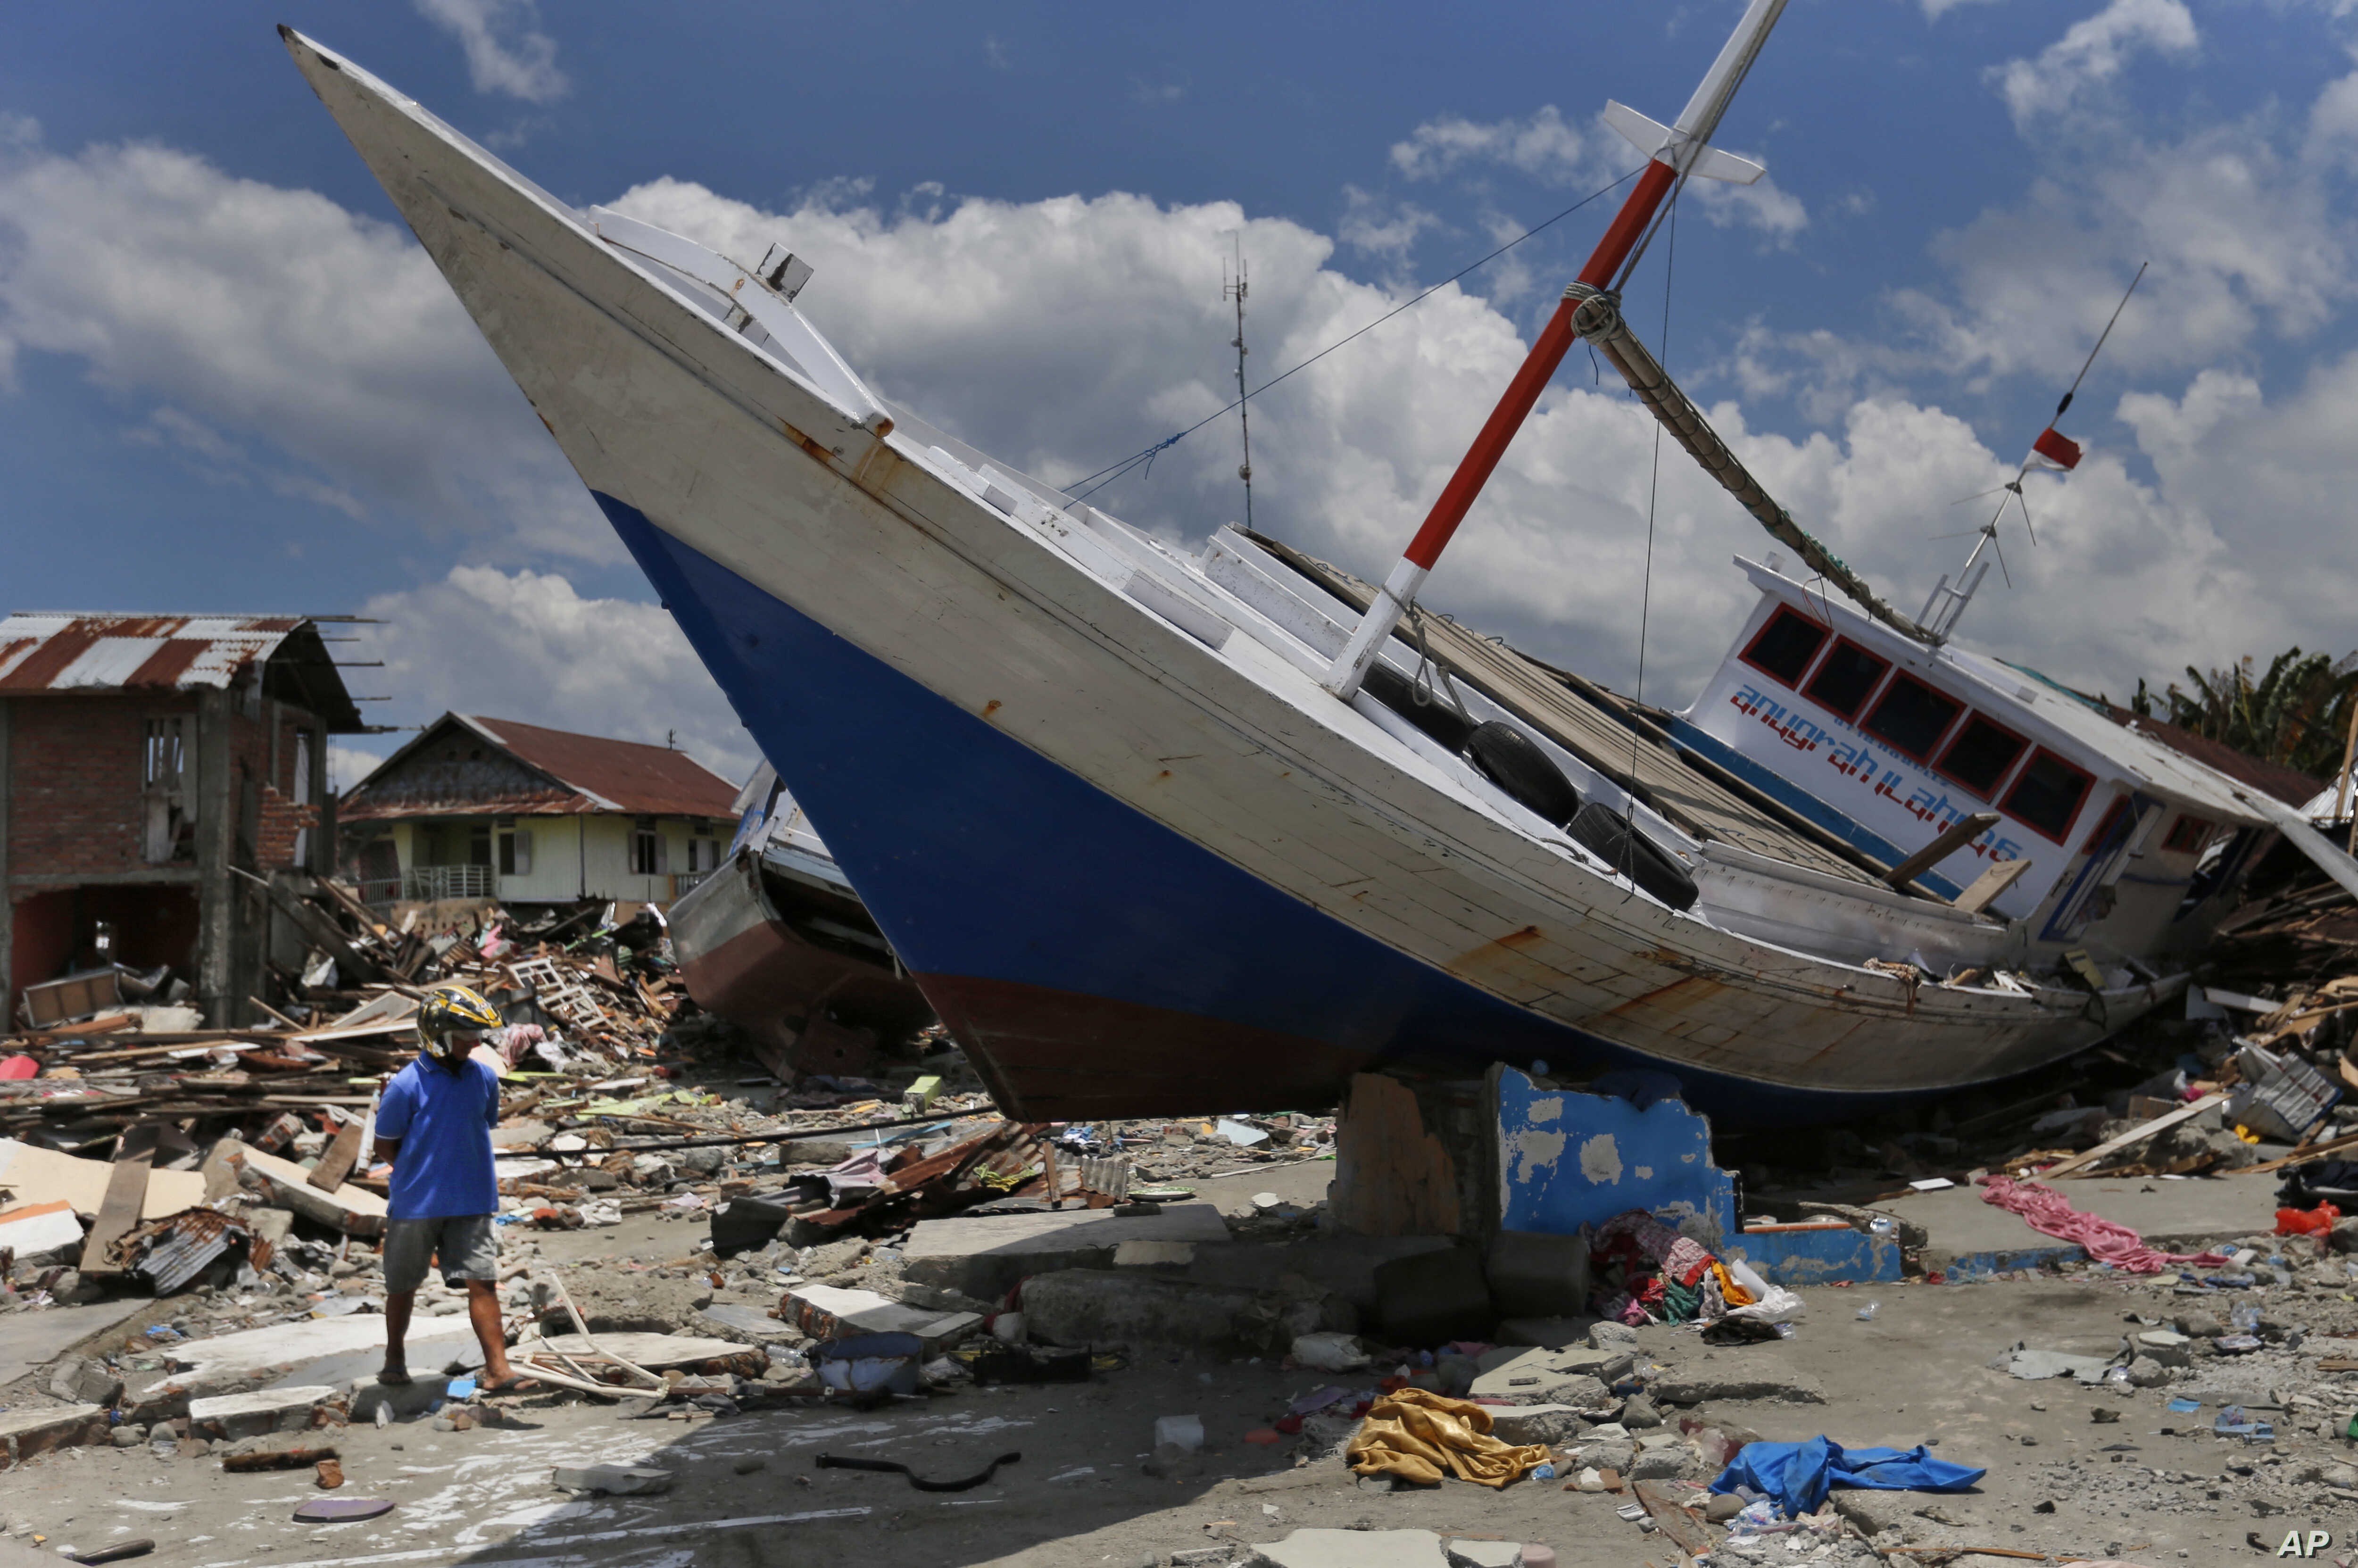 A man walks past a boat swept ashore by a tsunami in Wani village on the outskirt of Palu, Central Sulawesi, Indonesia, Wednesday, Oct. 10, 2018.